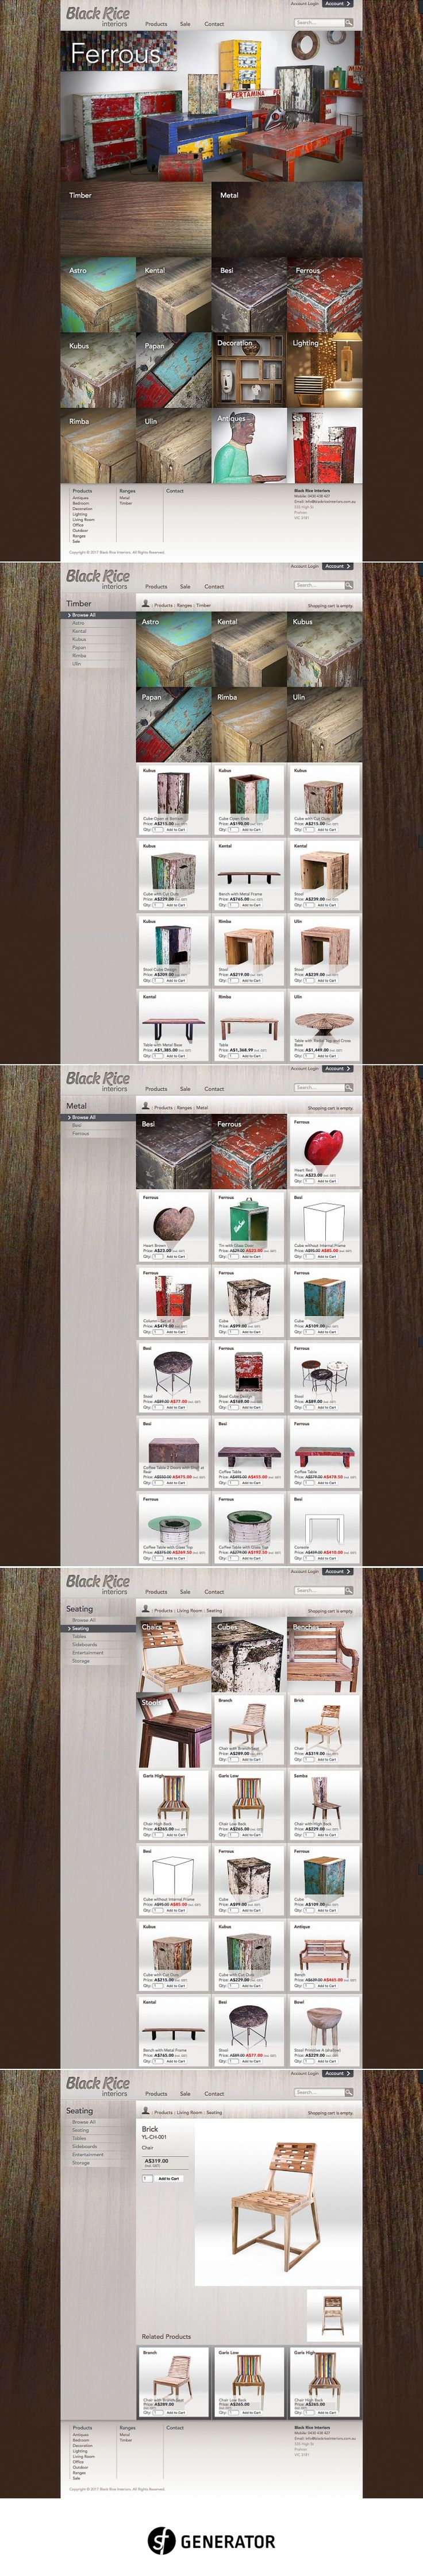 Web design and development of the Black Rice Interiors online catalogue using the Adobe Business Catalyst Content Management System (CMS). Black Rice Interiors has a unique collection of Javanese inspired contemporary indoor and outdoor furniture, lighting, homewares, art and antiques. All created from recycled materials. SF Generator was commissioned to help produce an online catalogue that reflected the heart of this distinctive range. - created via https://pinthemall.net